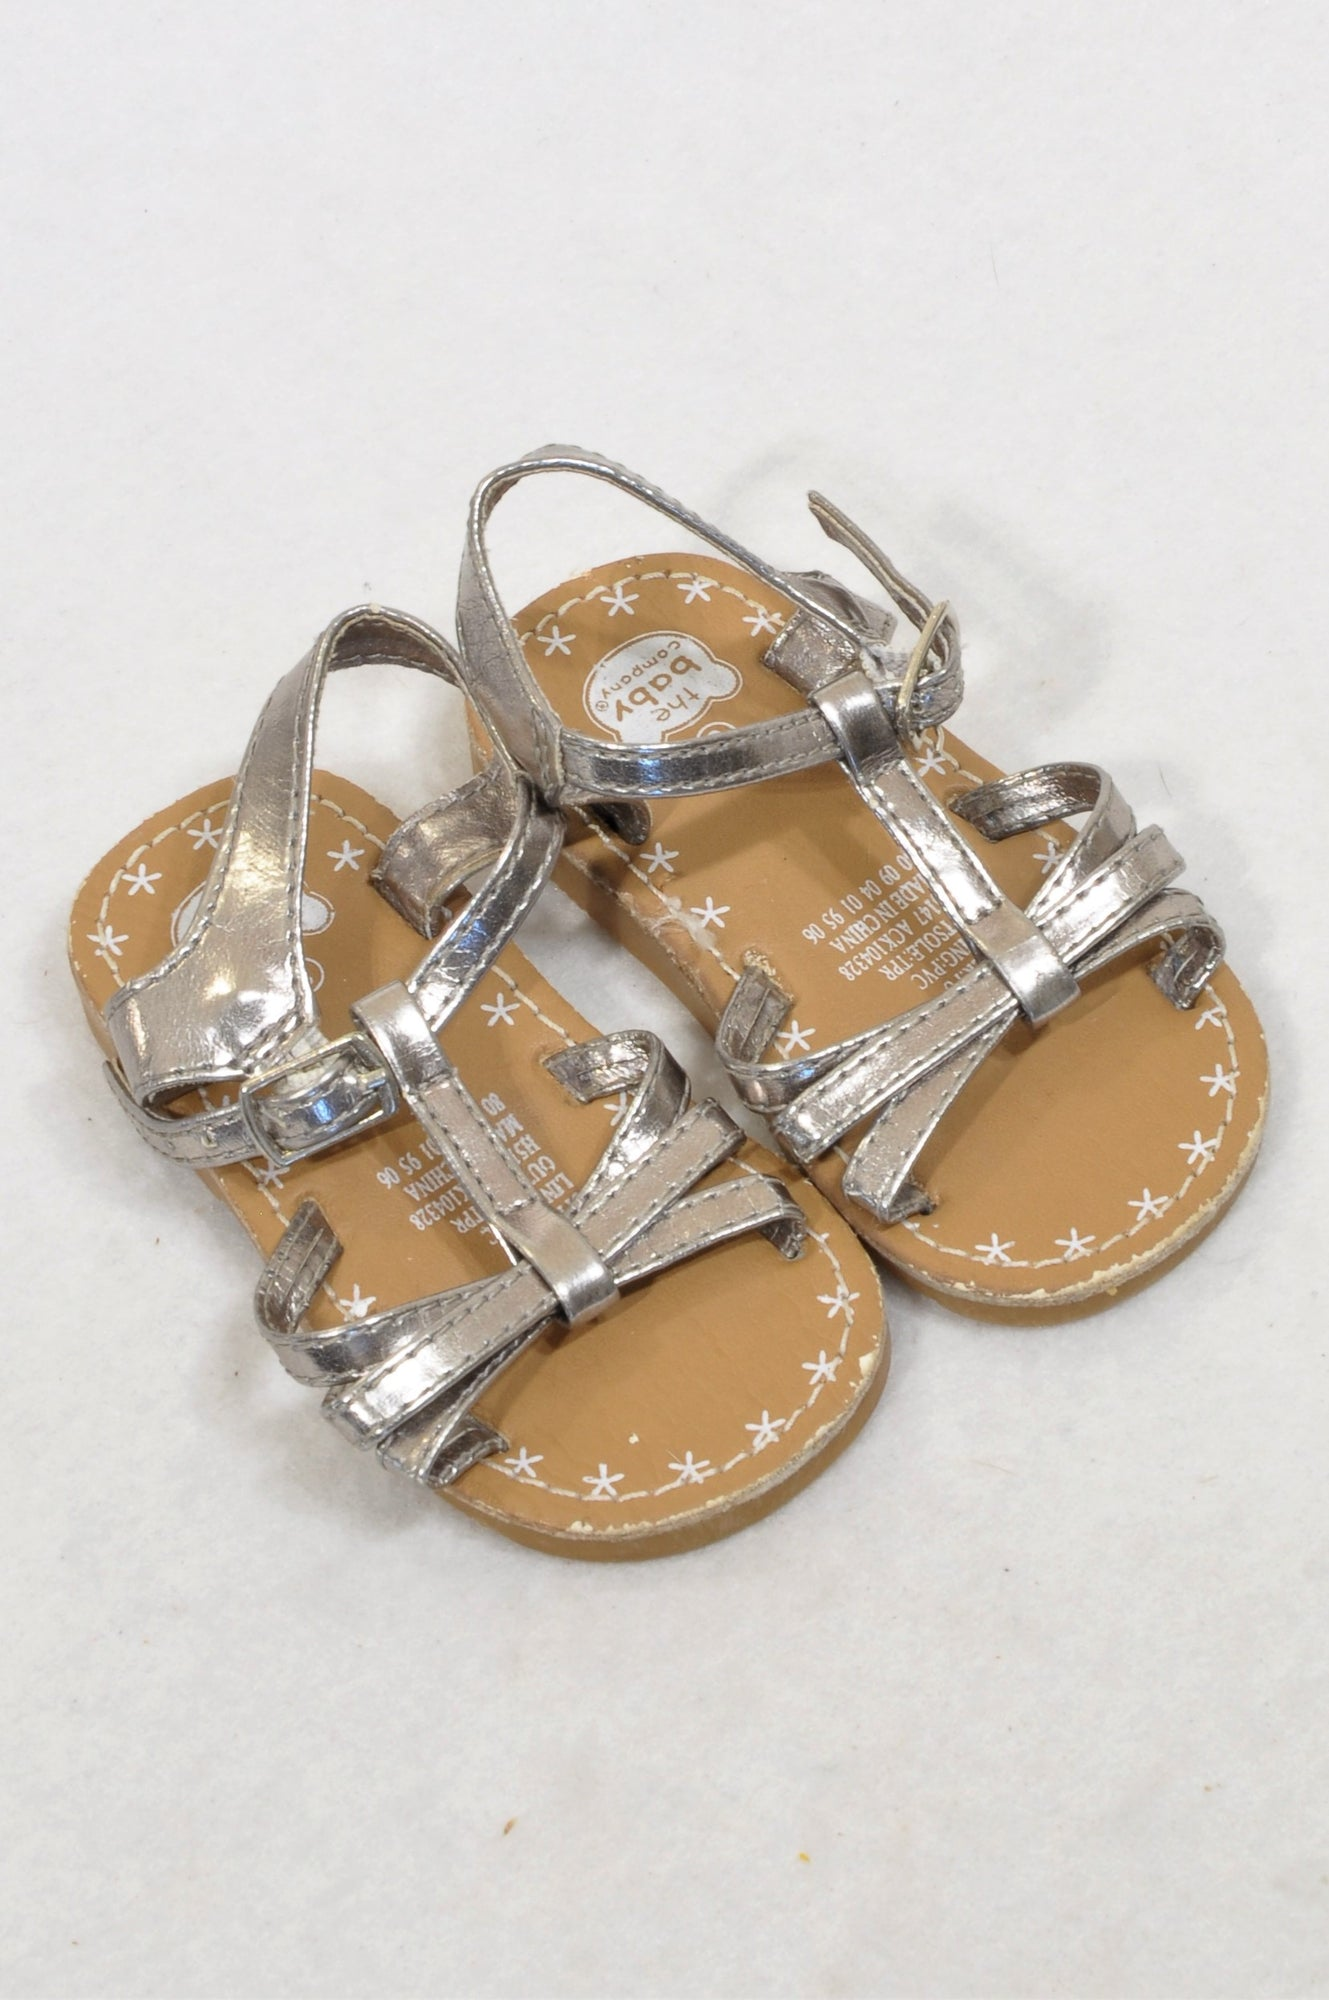 Ackermans Size 3 Pewter Metallic Buckle Sandals Girls 9-12 months